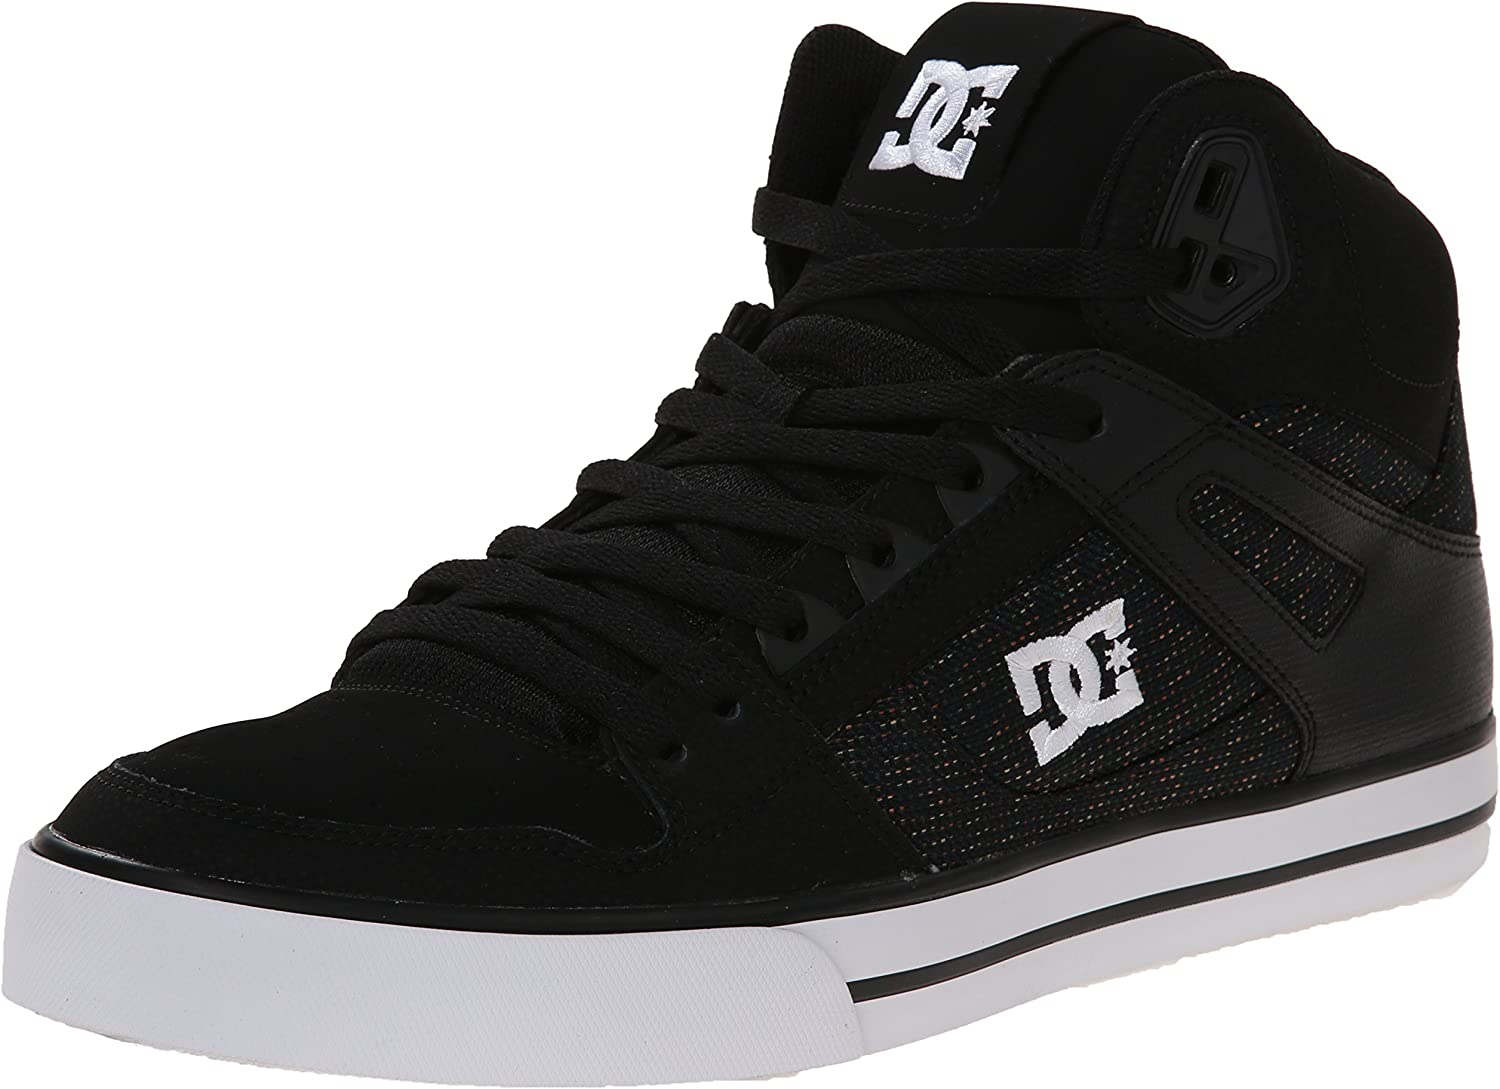 Spartan High WC SE Lace-Up Sneaker